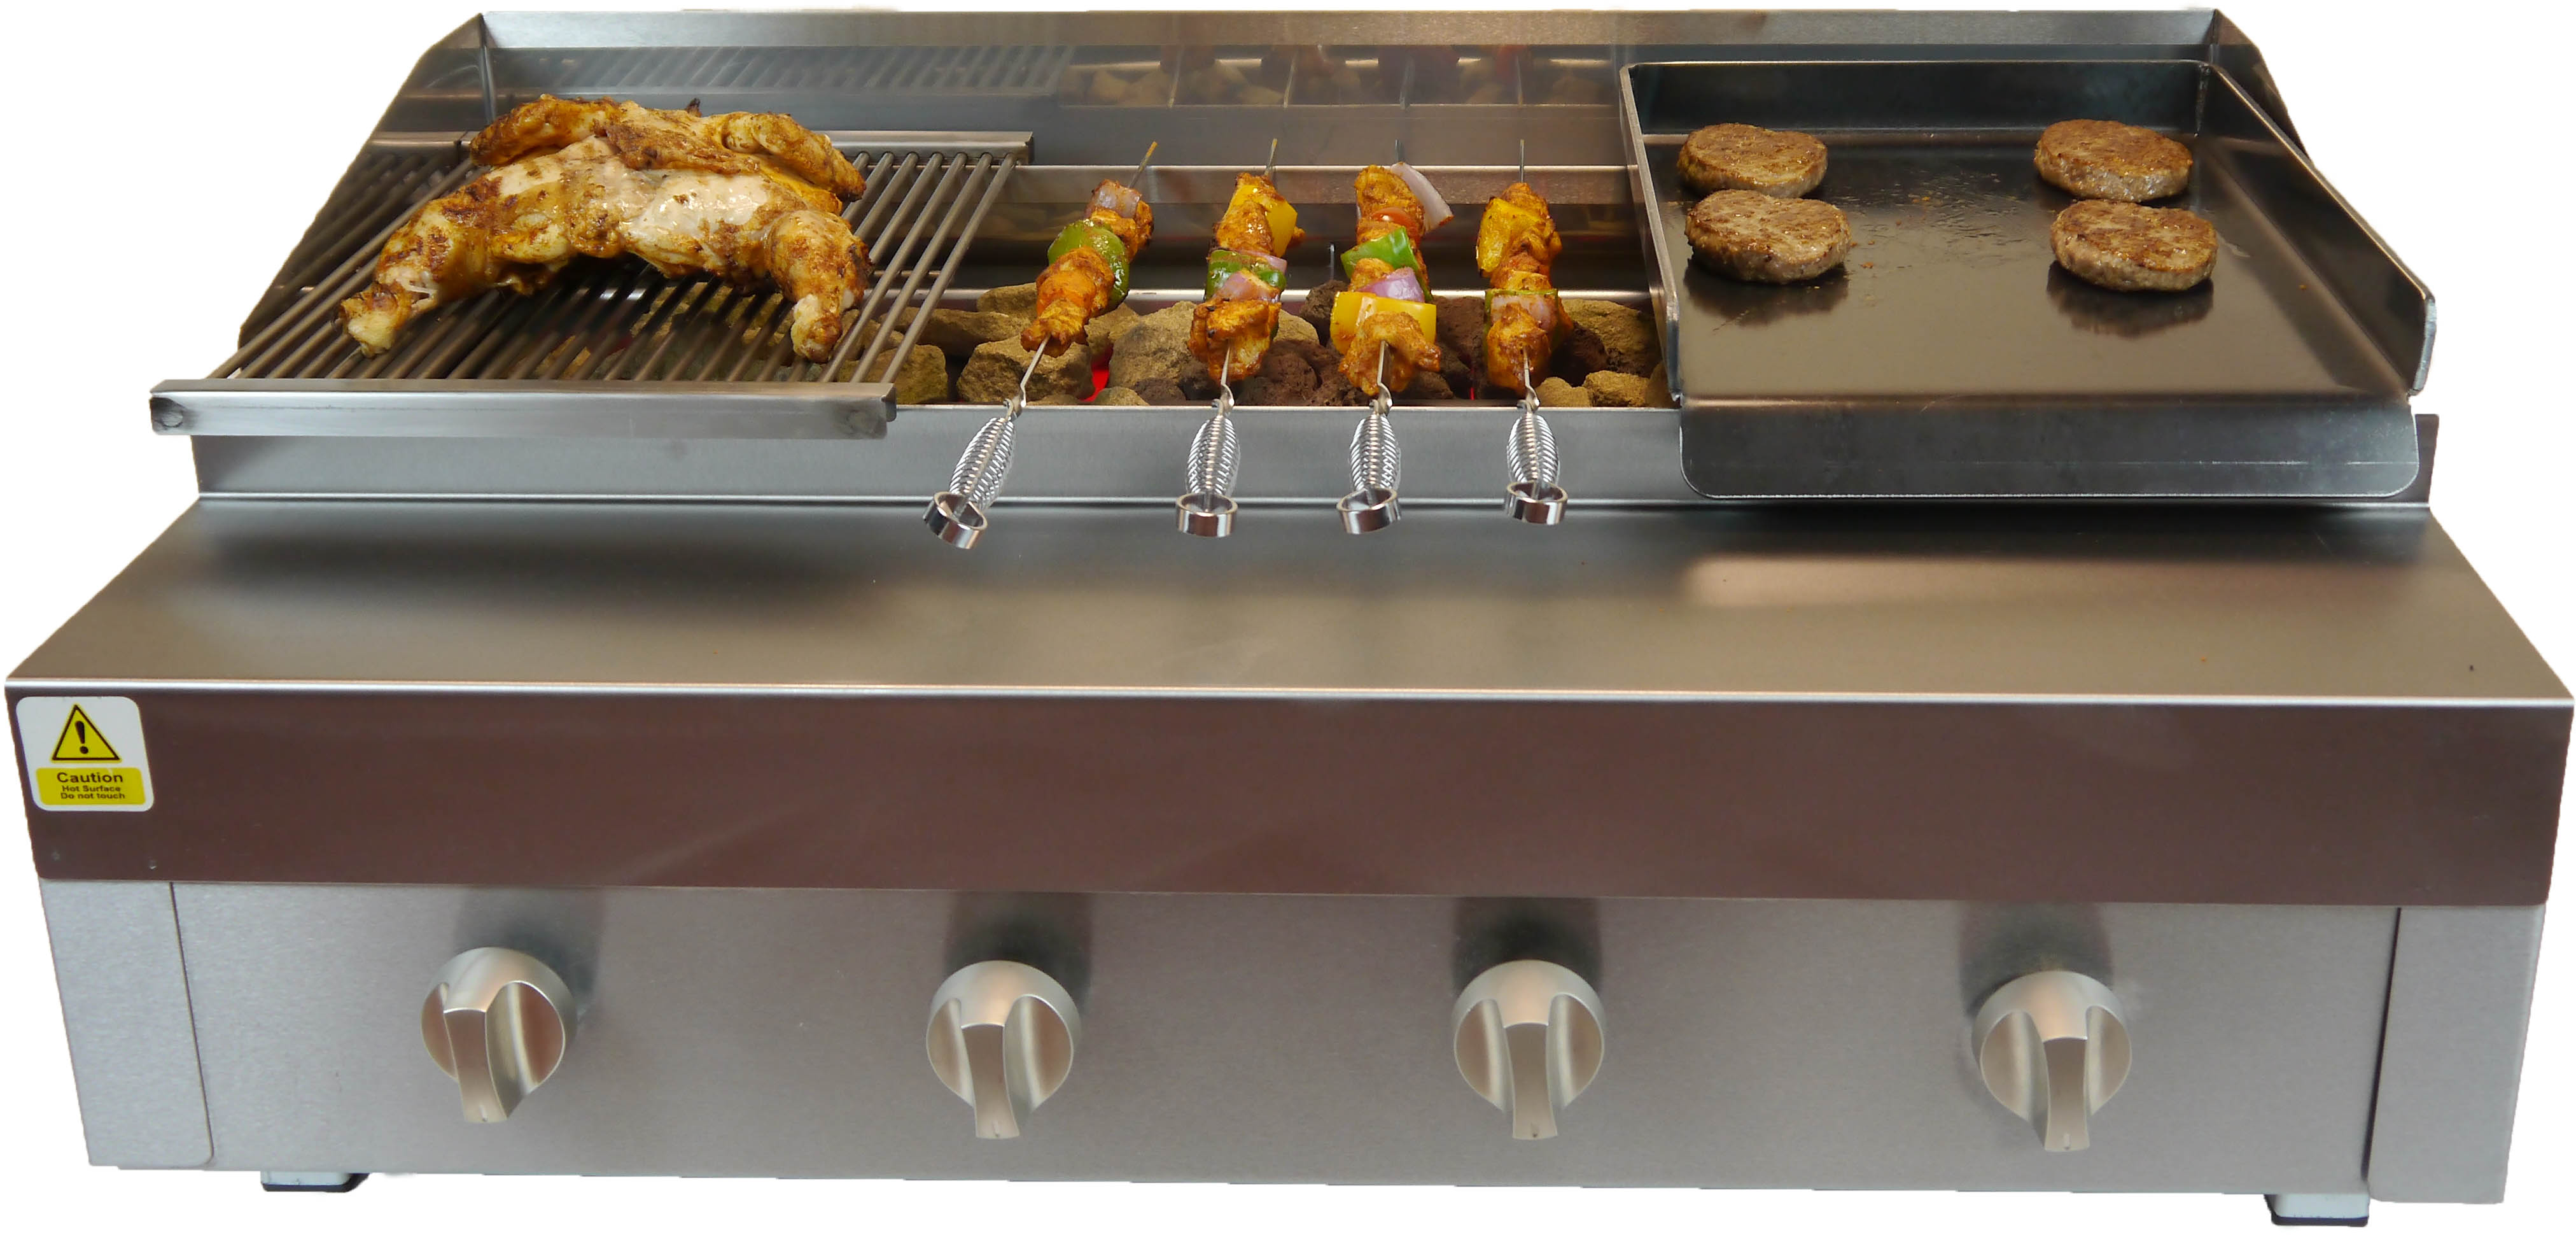 3 IN 1 CHAR GRILL BBQ GRILL ON STAND WITH GRIDDLE /& HOTPLATE CHARGRILL CHARCOAL